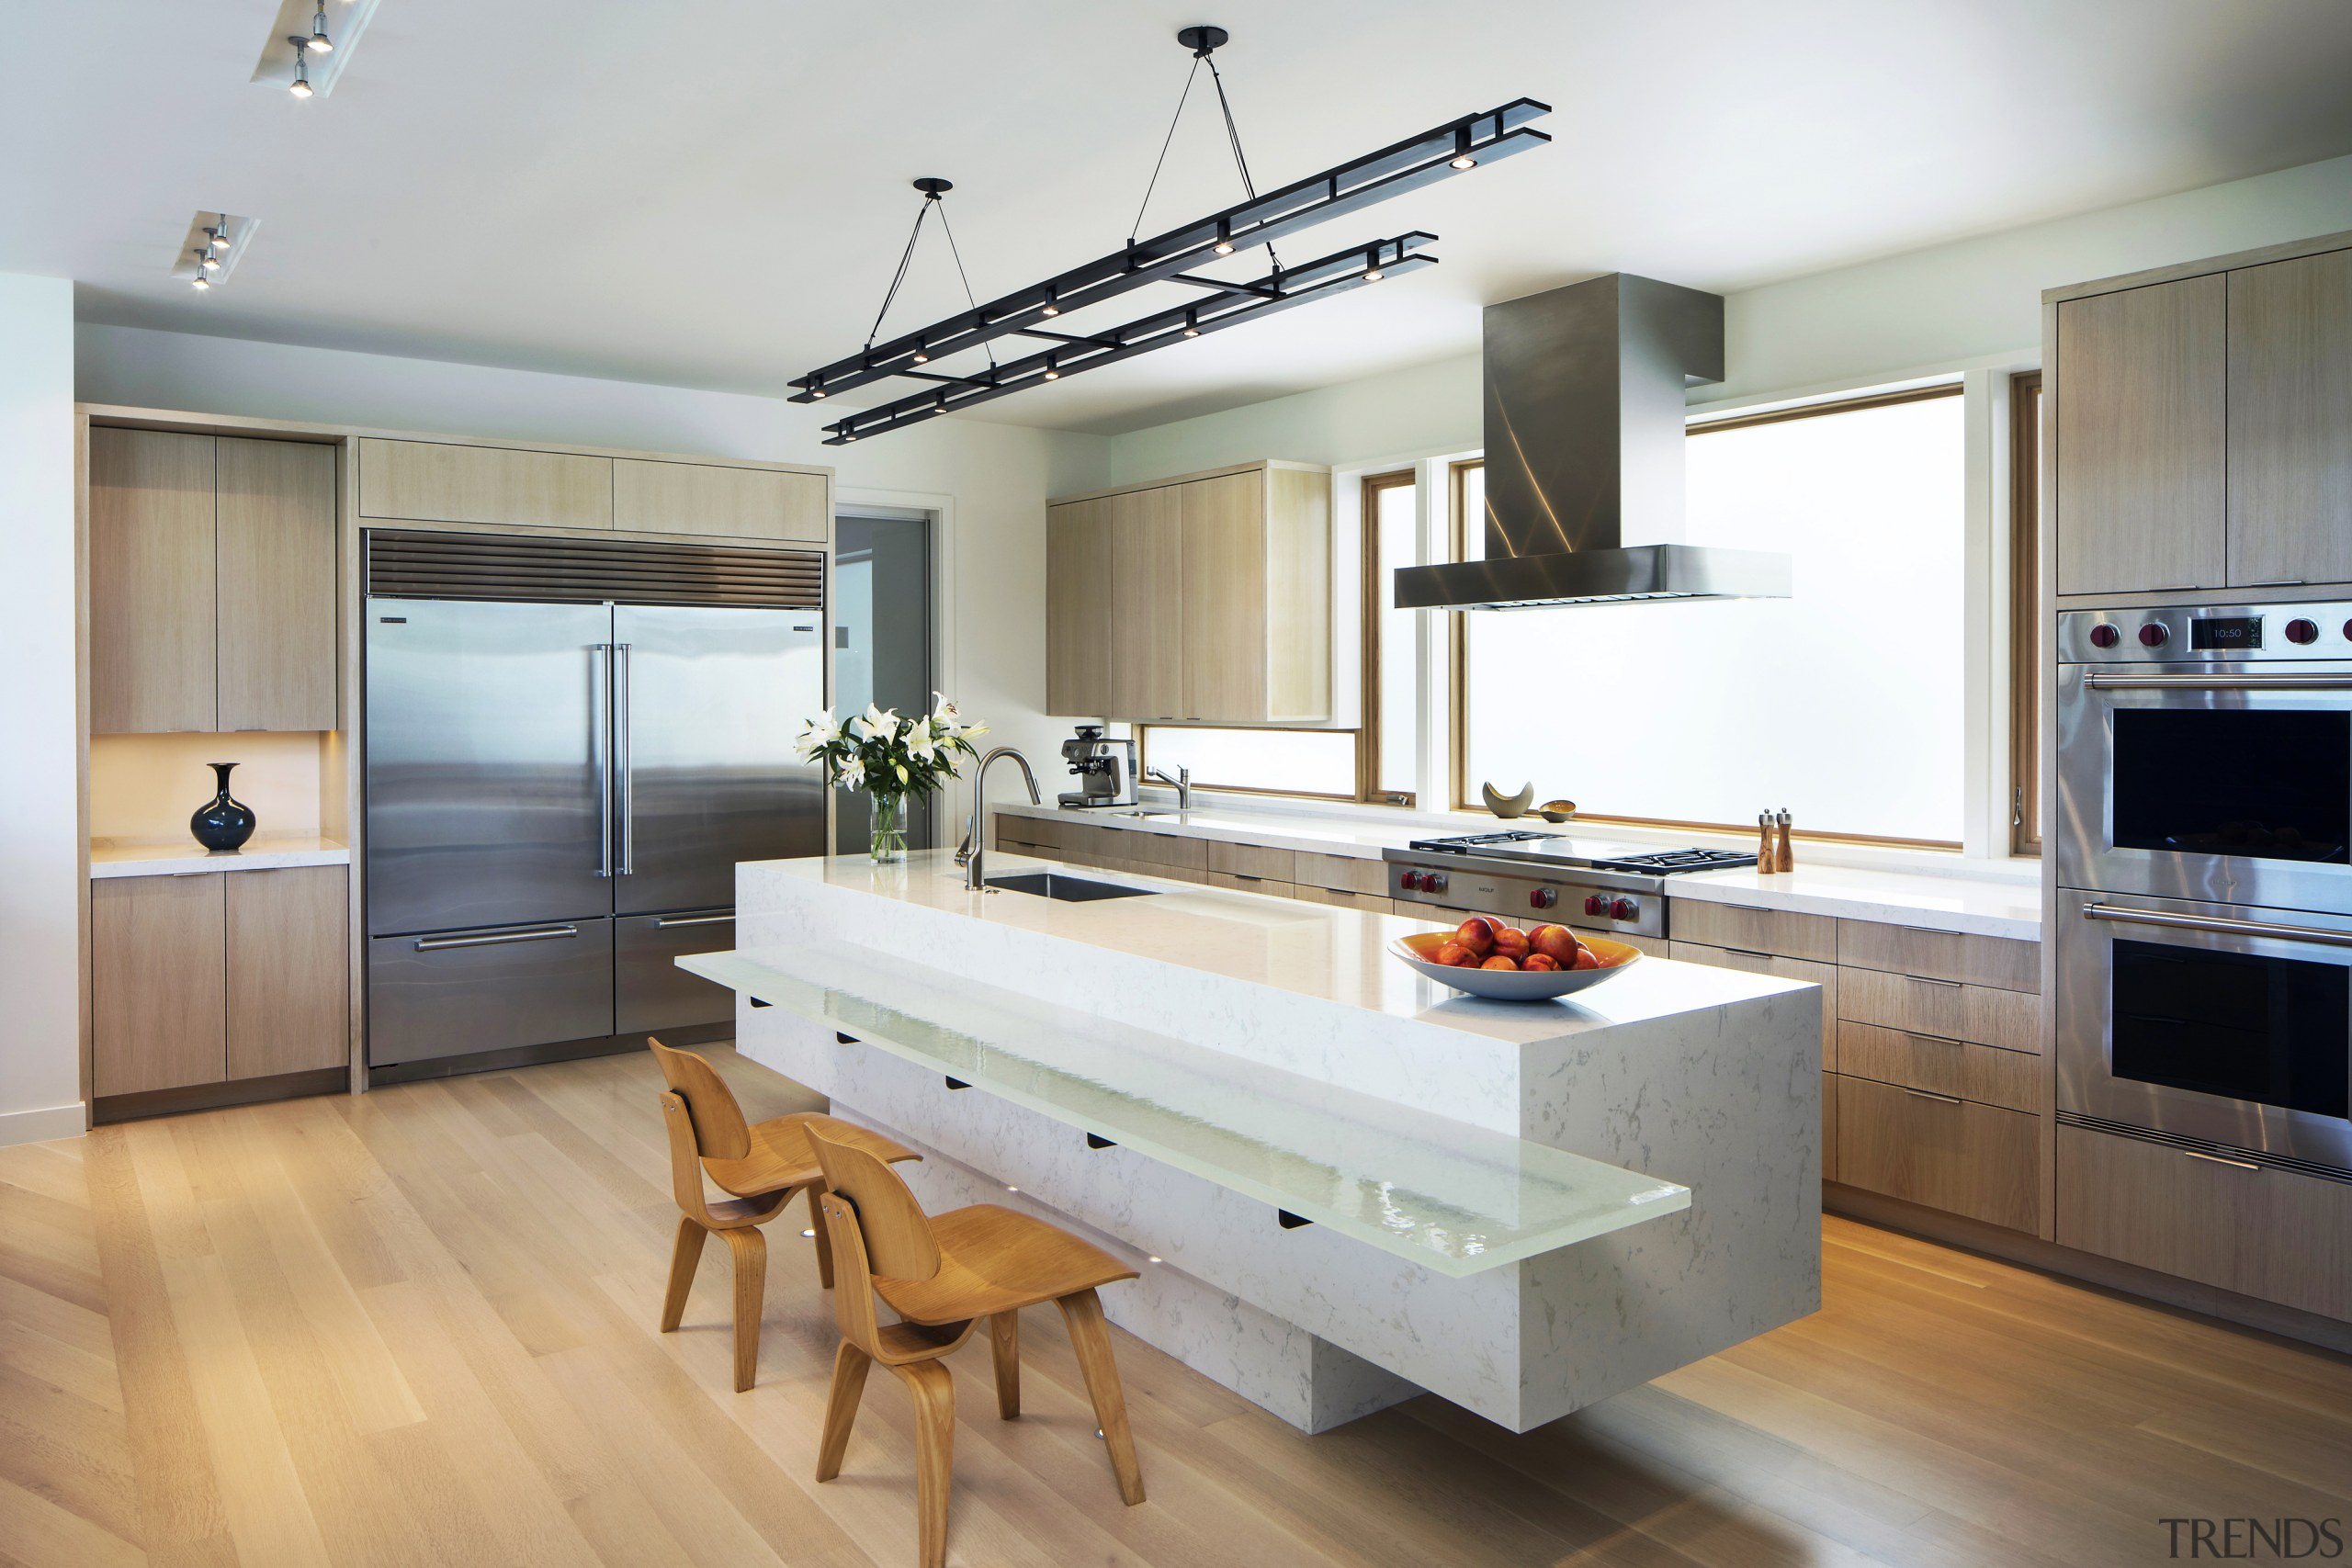 The continuing Finne design work in crafted modernism cabinetry, countertop, cuisine classique, interior design, kitchen, gray